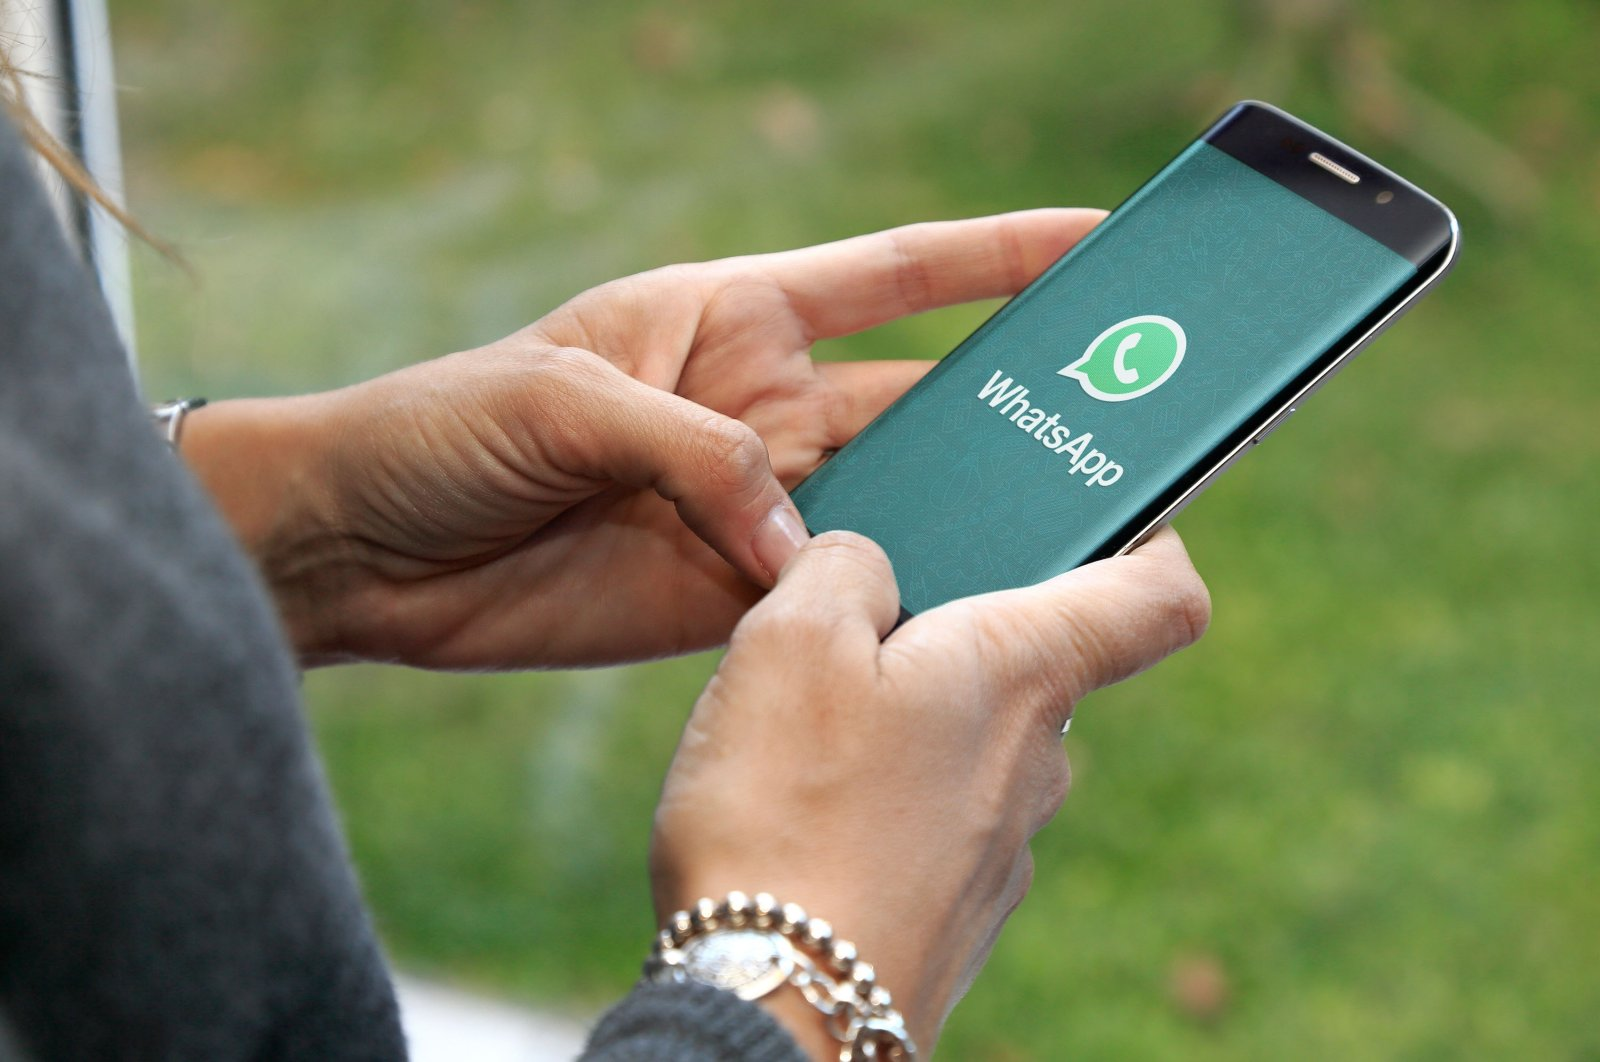 WhatsApp is warning users in a pop-up notice that they need to accept the new updates to continue using WhatsApp or delete their accounts. (Shutterstock Photo)